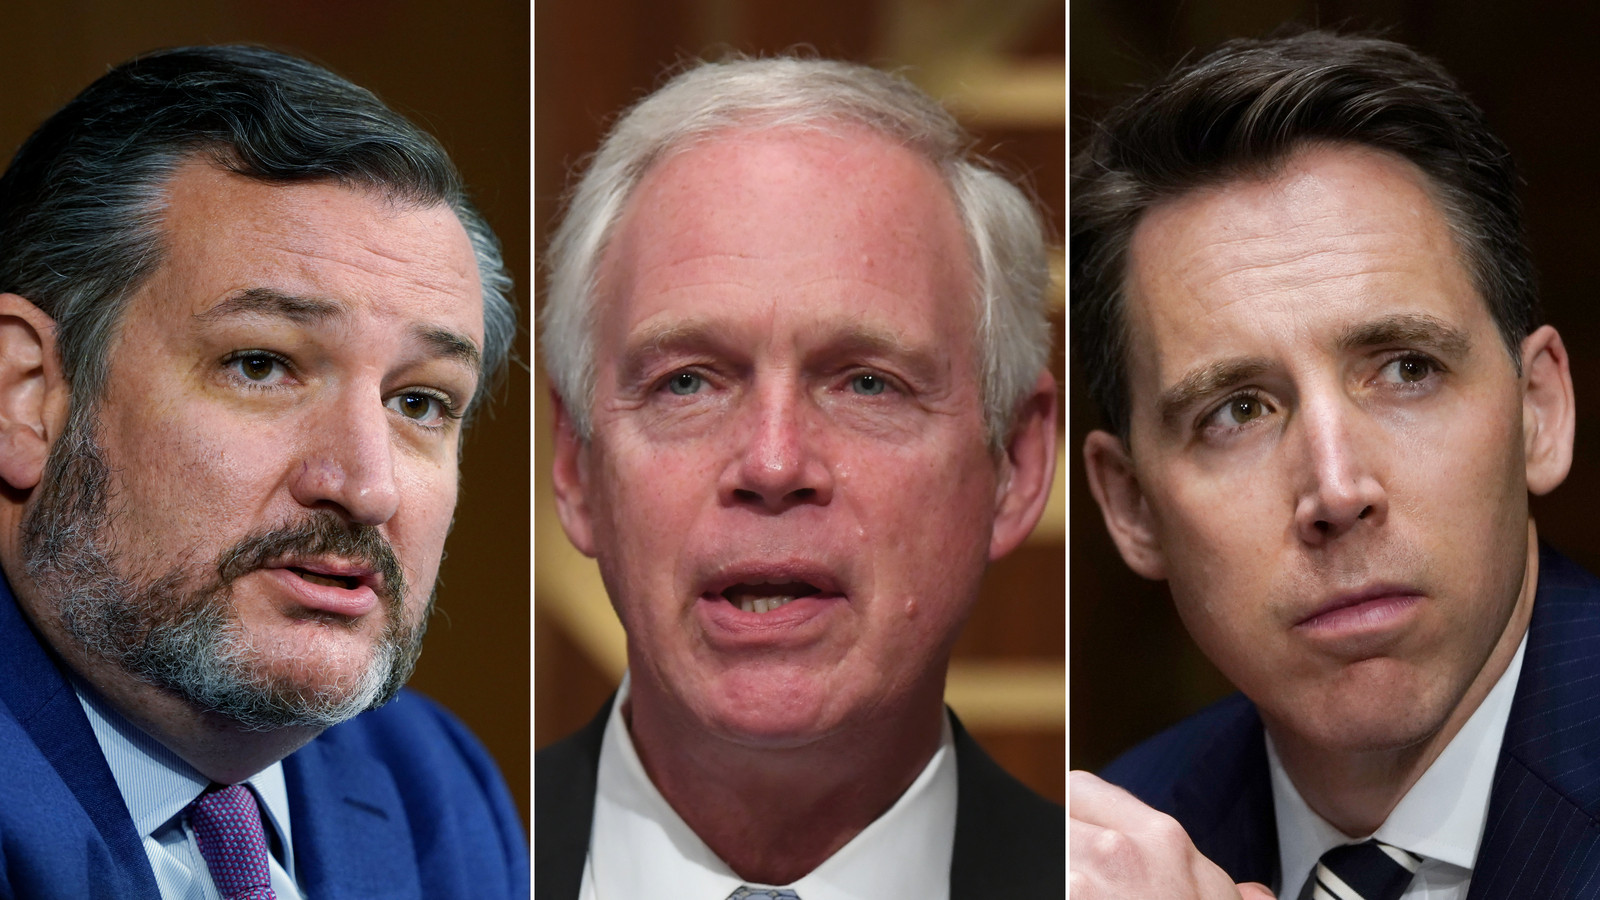 3 Republican senators should be kicked off committees and possibly expelled for supporting Trump and inciting Capitol Hill mob violence - Democrat Senator suggests